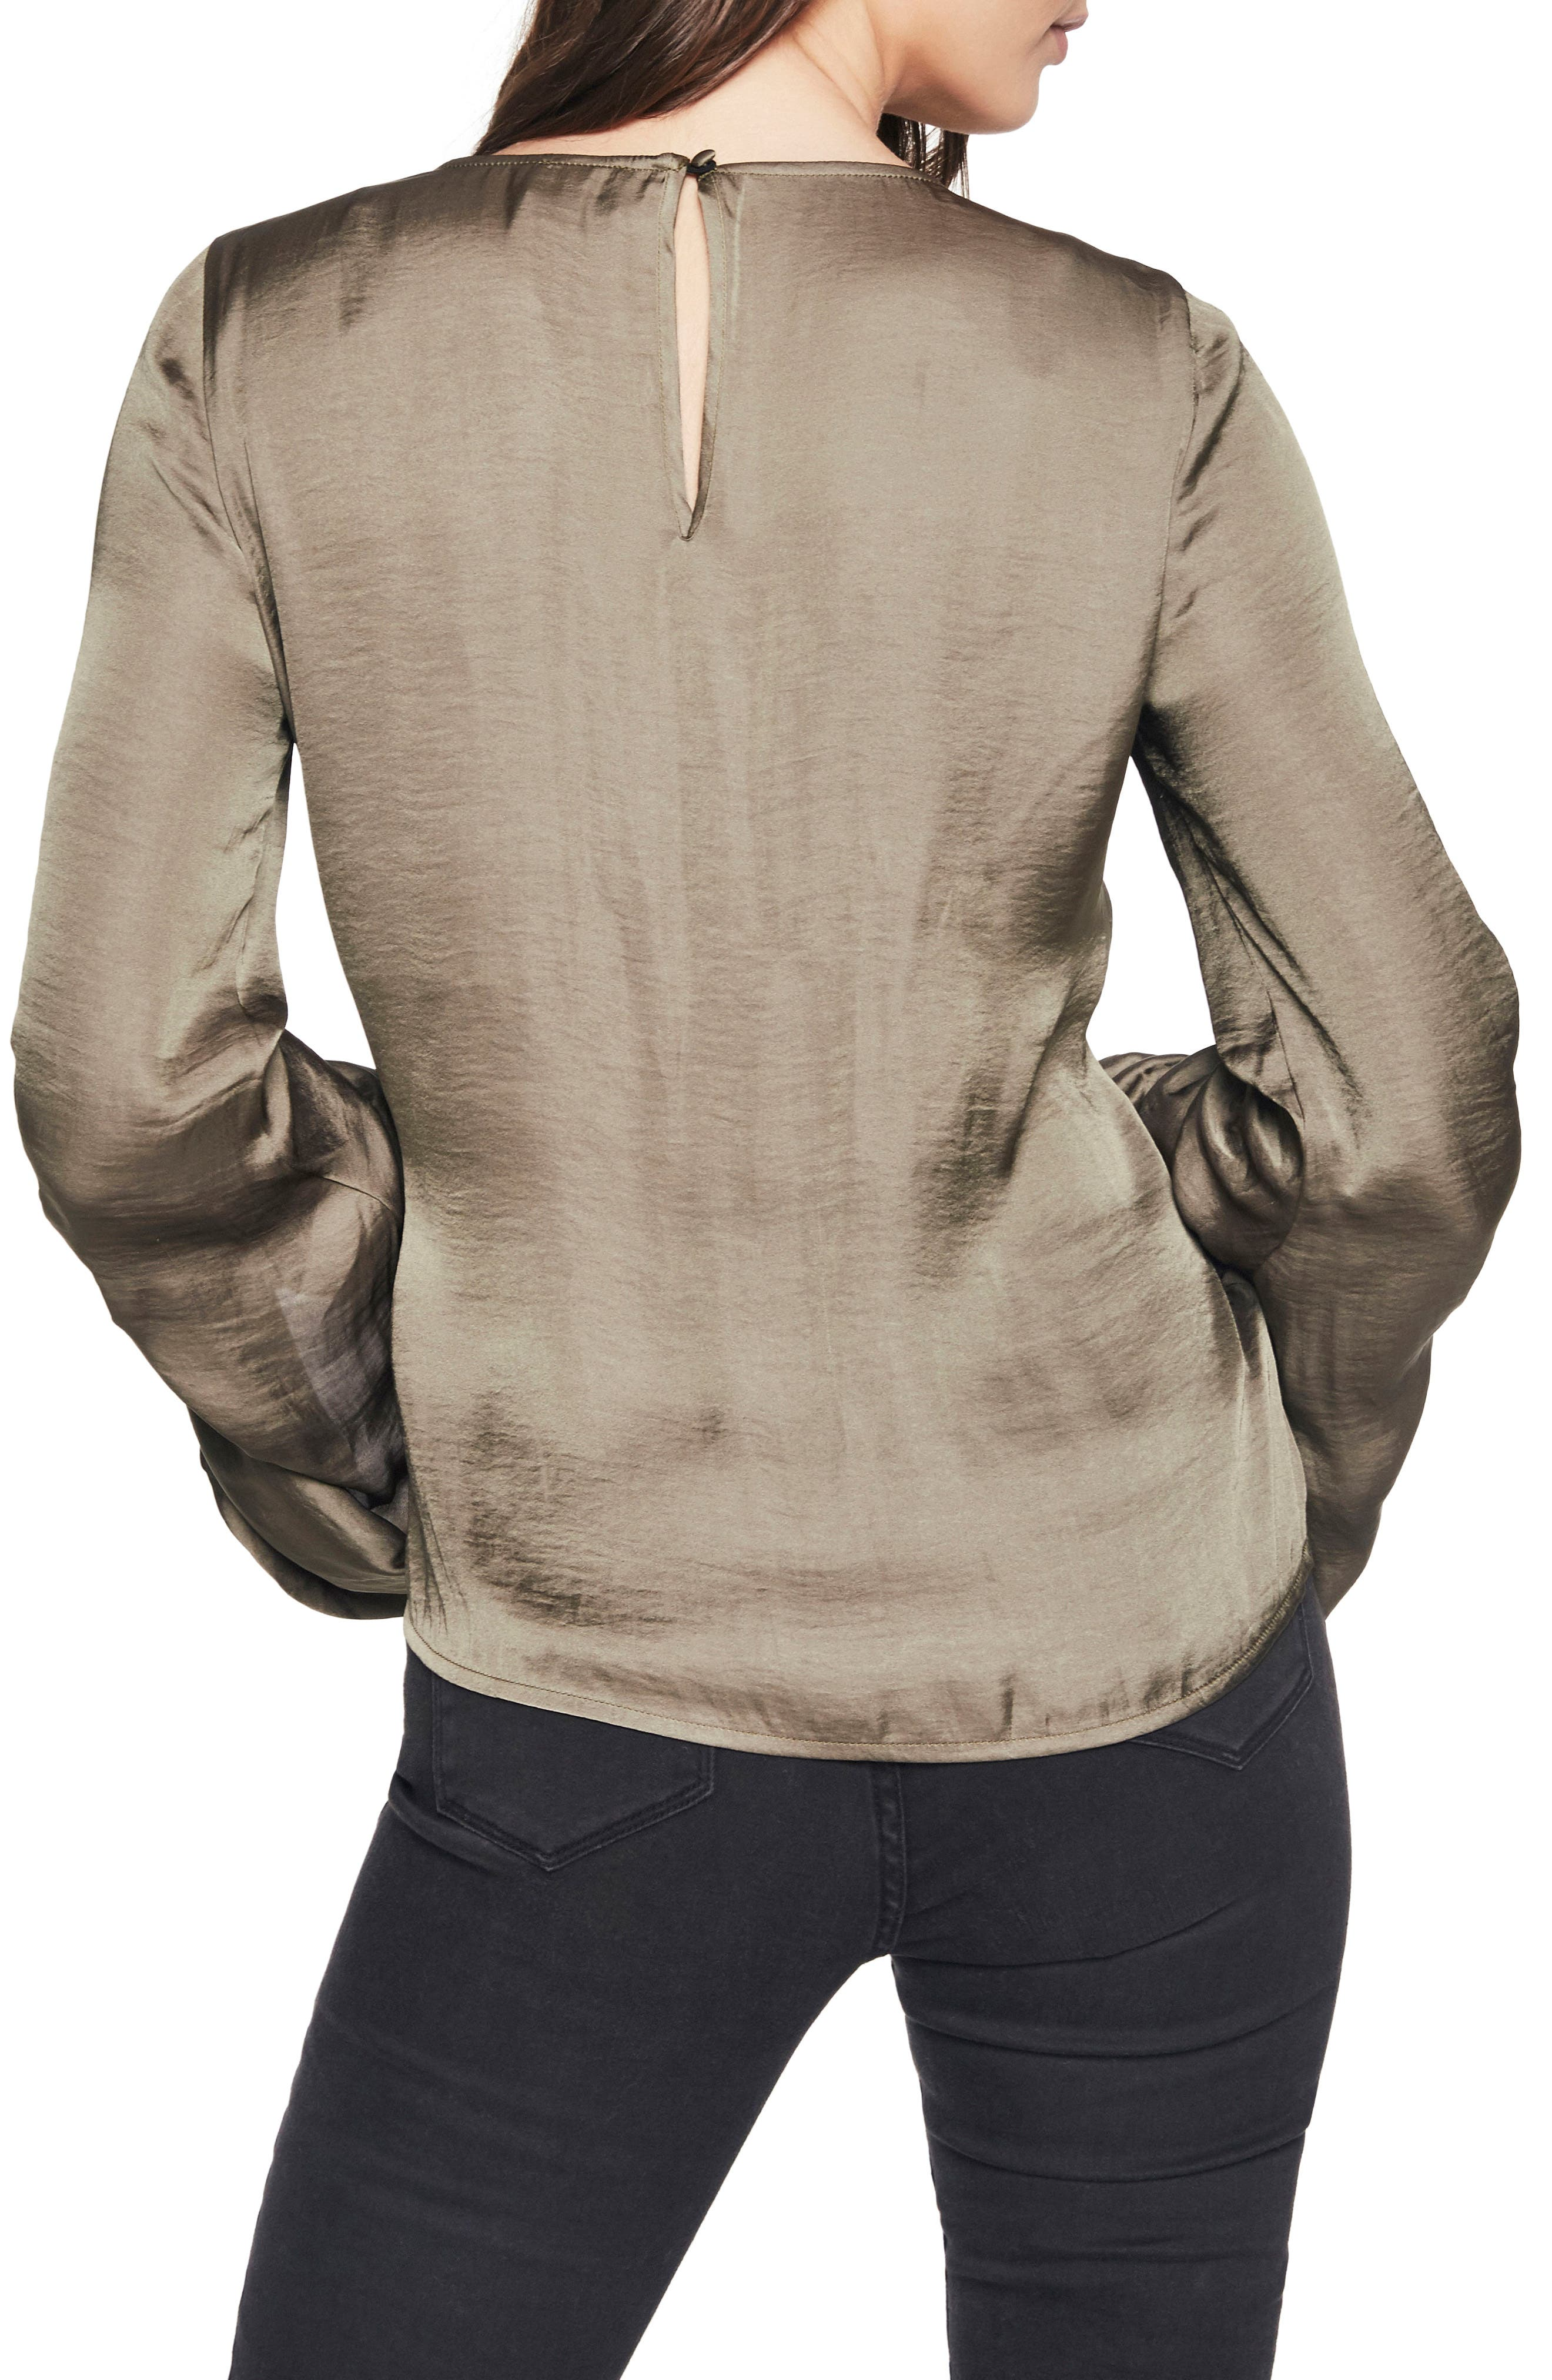 Lulu Ruched Sleeve Top,                             Alternate thumbnail 2, color,                             Khaki